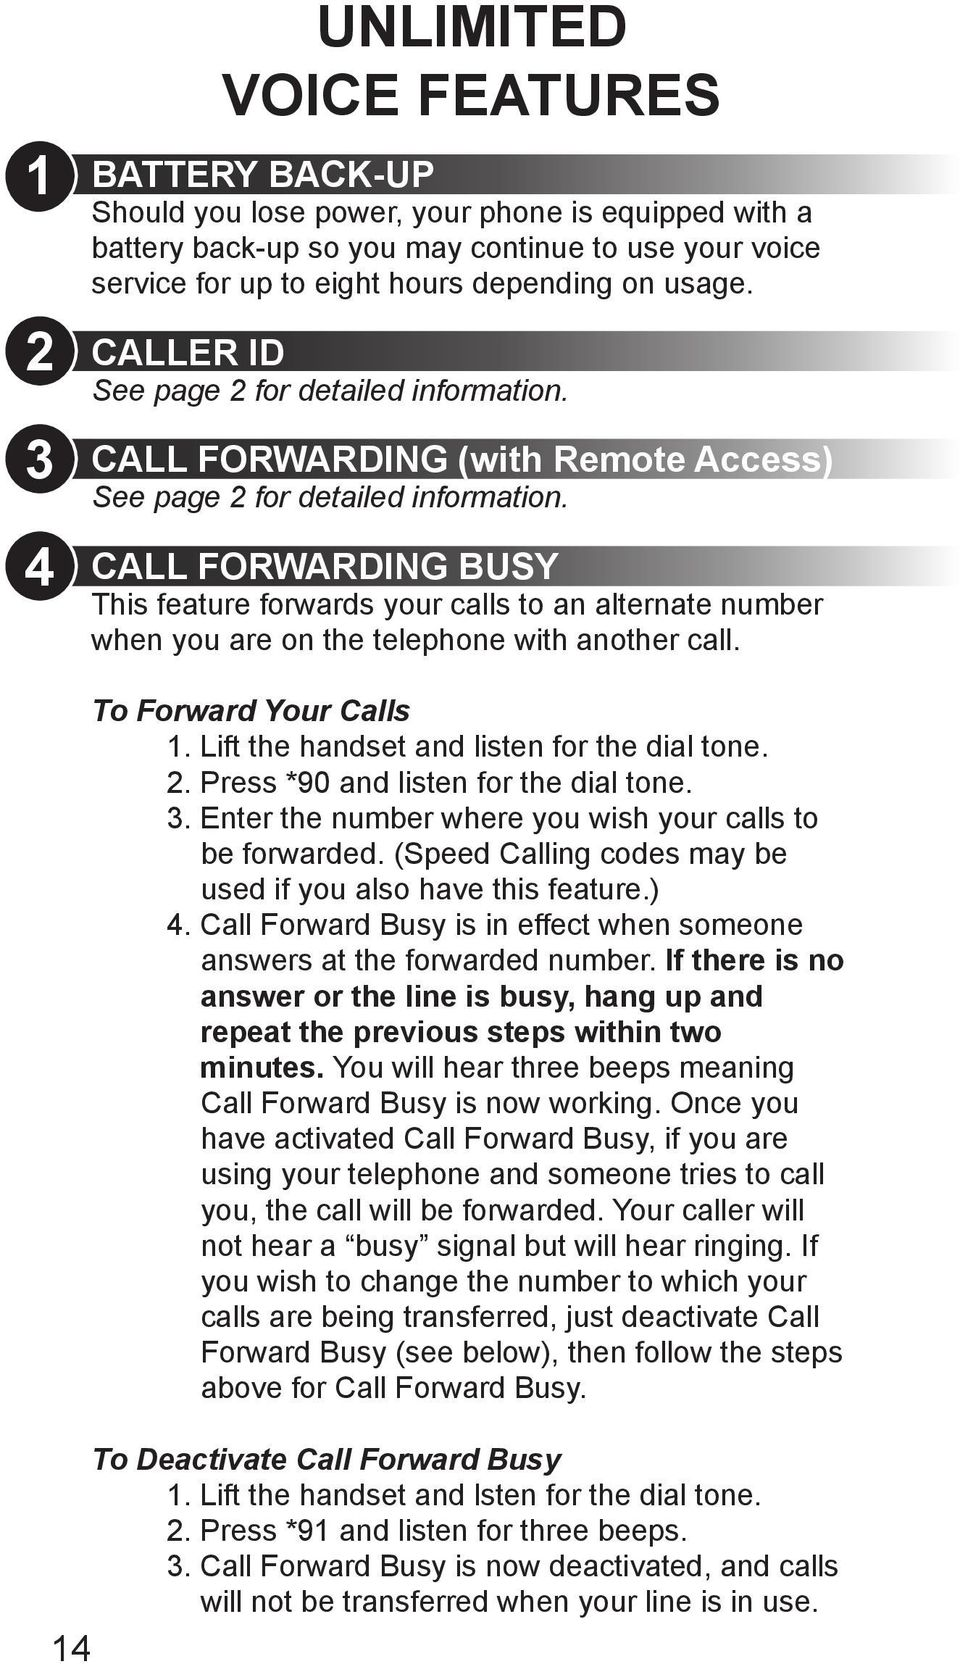 CALL FORWARDING BUSY This feature forwards your calls to an alternate number when you are on the telephone with another call. To Forward Your Calls 1. Lift the handset and listen for the dial tone. 2.